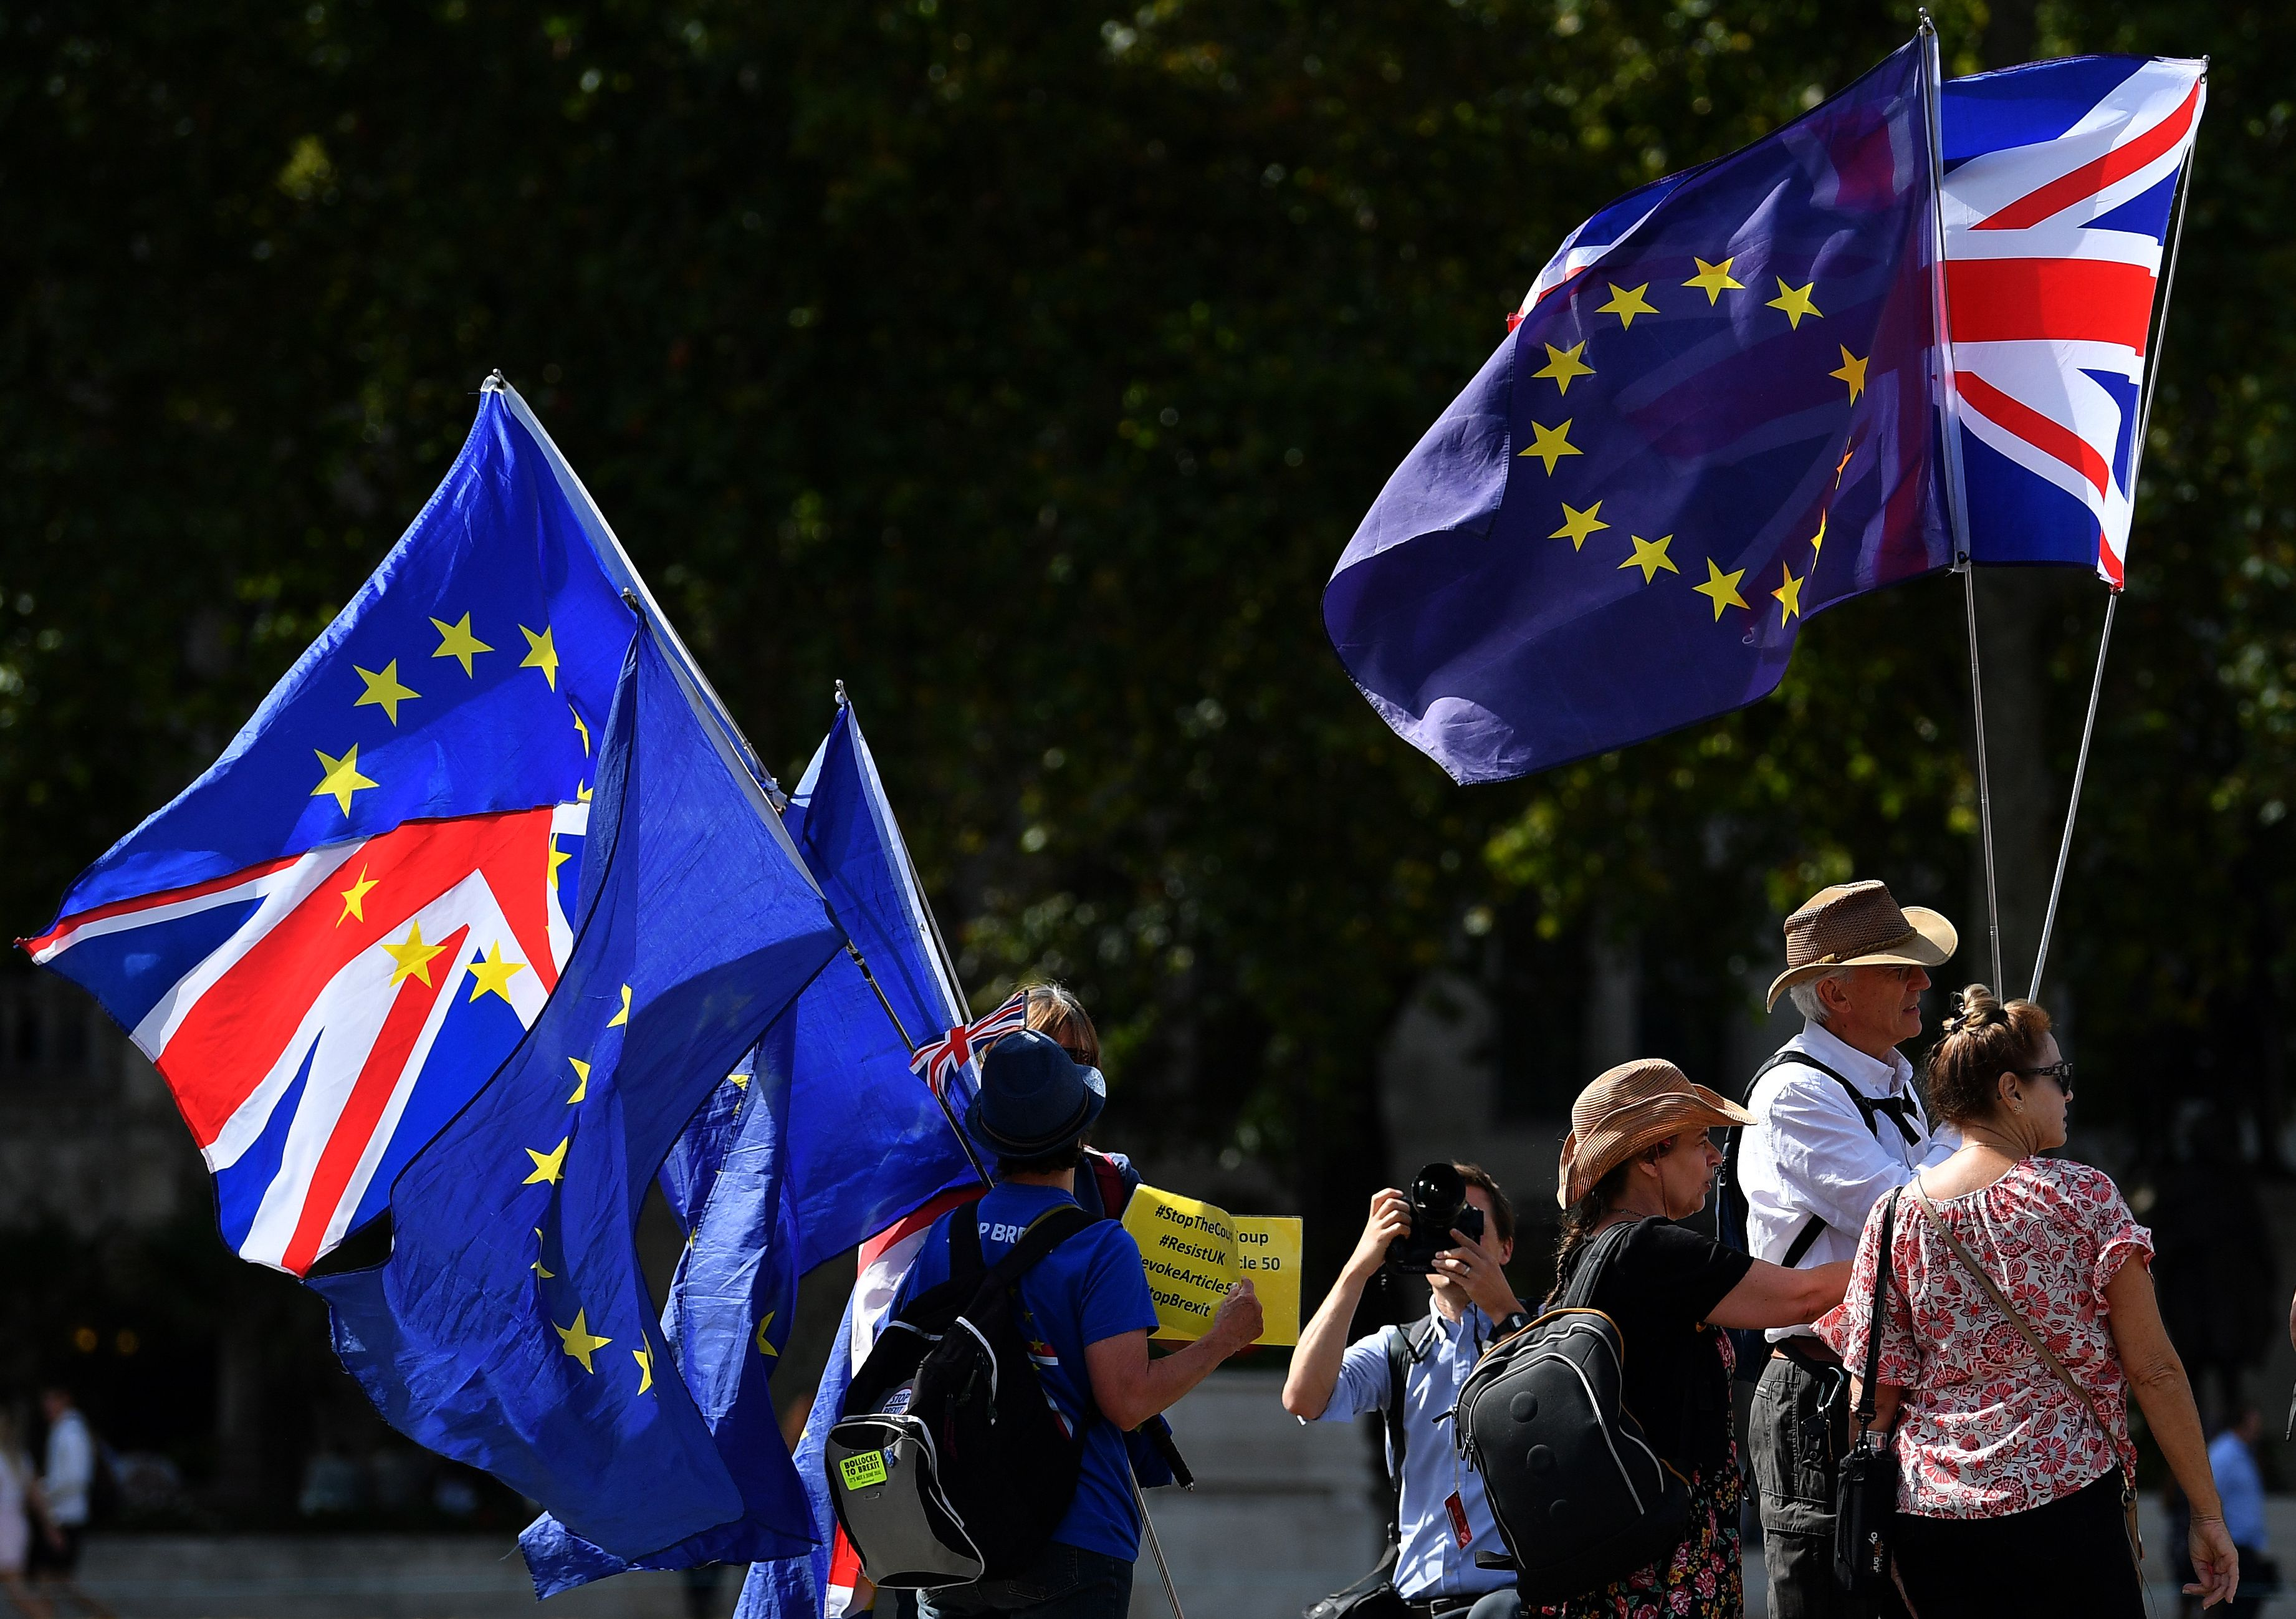 Anti-Brexit activists hold Union and EU flags as they demonstrate opposite the Houses of Parliament in Westminster, London on August 29, 2019. - Prime Minister Boris Johnson's suspension of parliament weeks before Britain's EU departure date faced legal challenges on Thursday following a furious outcry from pro-Europeans and MPs opposed to a no-deal Brexit. (Photo by DANIEL LEAL-OLIVAS / AFP)        (Photo credit should read DANIEL LEAL-OLIVAS/AFP/Getty Images)